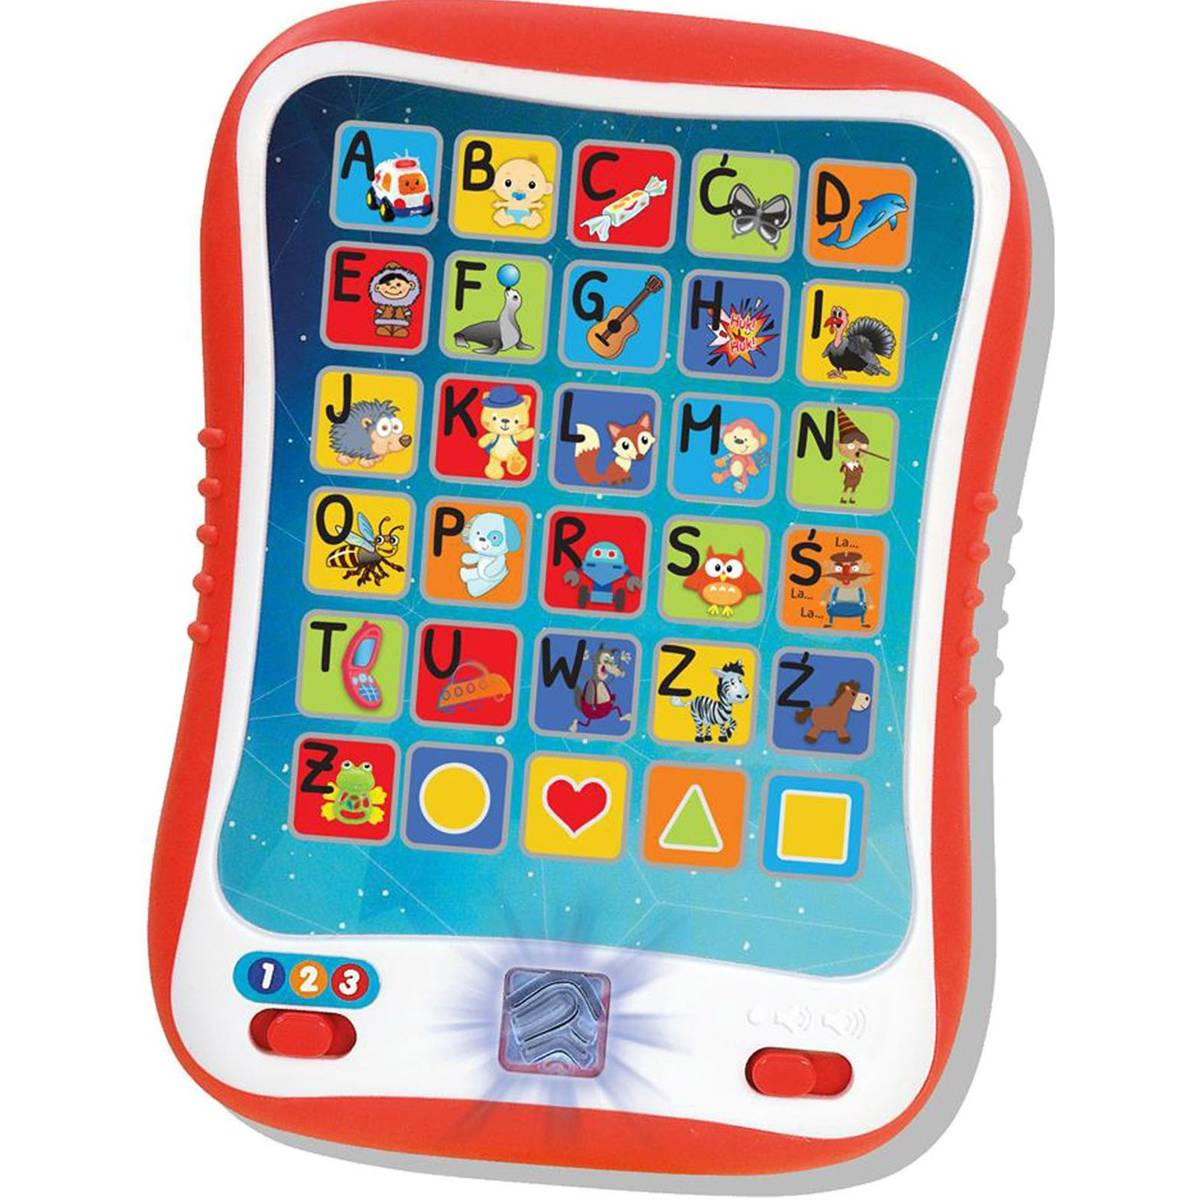 SMILY PLAY Bystry Tablet komputer